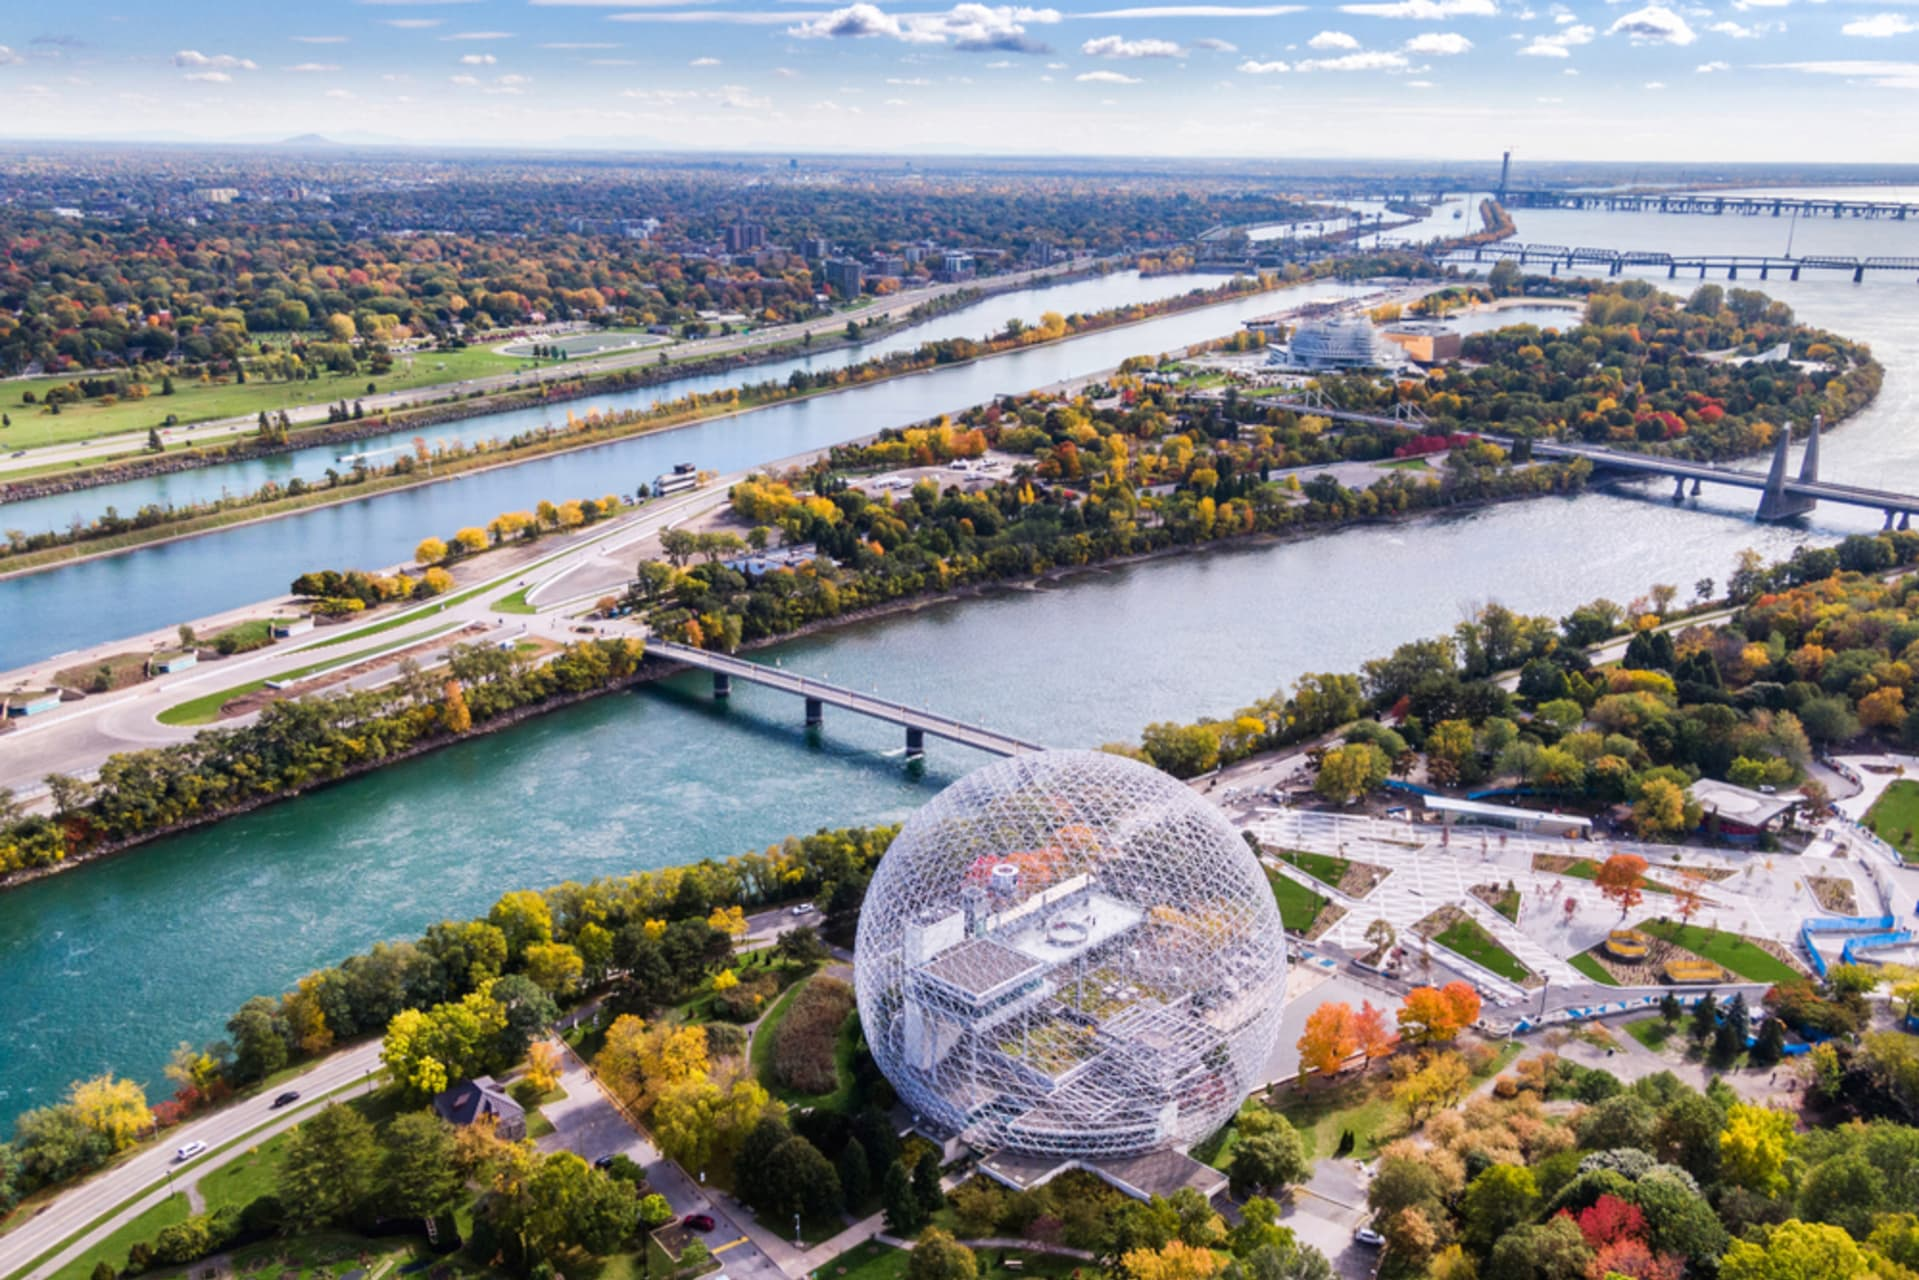 Montreal - Montreal, Expo '67, the 20th Century's most-successful World Fair!